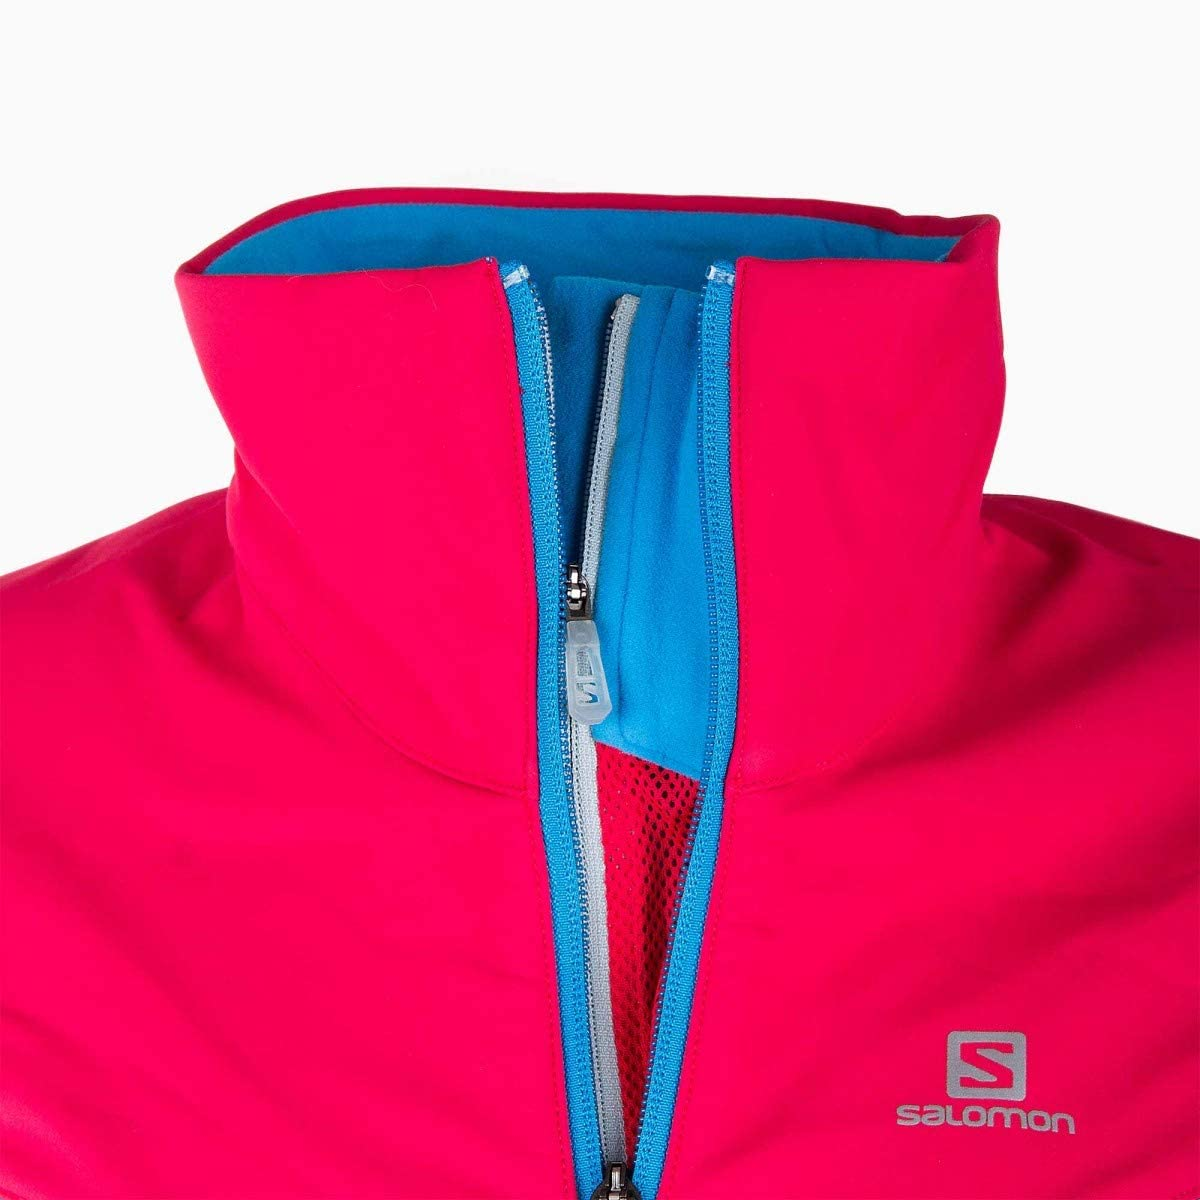 SALOMON Veste de Ski Advanced Skin Shield Femme 40 Bleu